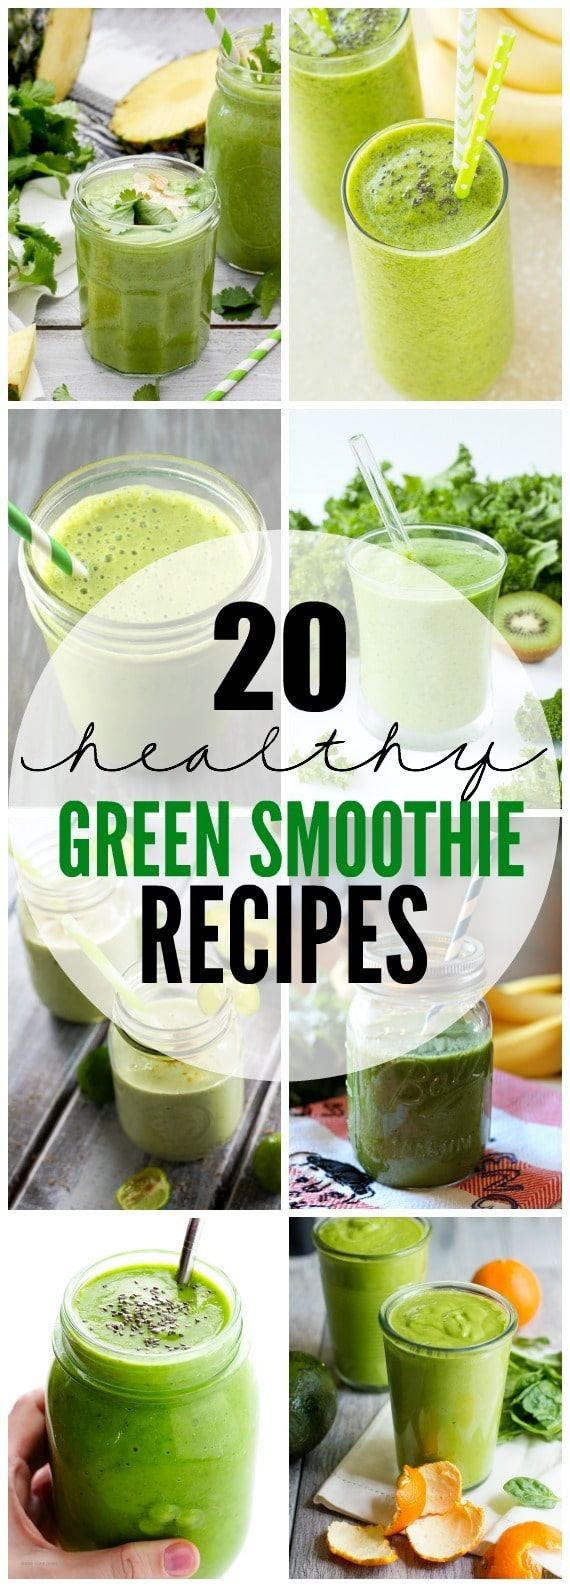 Green smoothies are a quick and simple way to get your veggies in and jumpstart your day with natural energy! Here are 20 Healthy Green Smoothie Recipes to give your body the nutrition it needs to tackle the day.